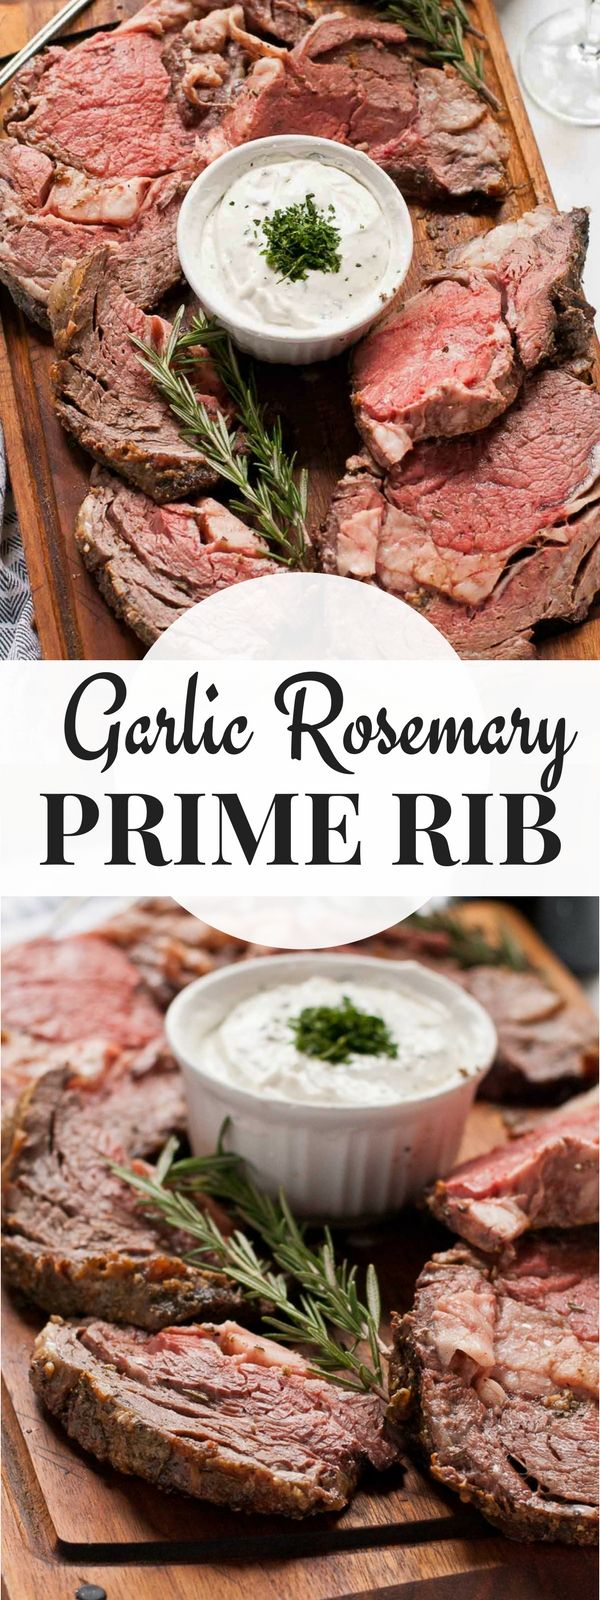 This Garlic Rosemary Crusted Prime Rib Roast is an easy and delicious centerpiece for your holiday meals.